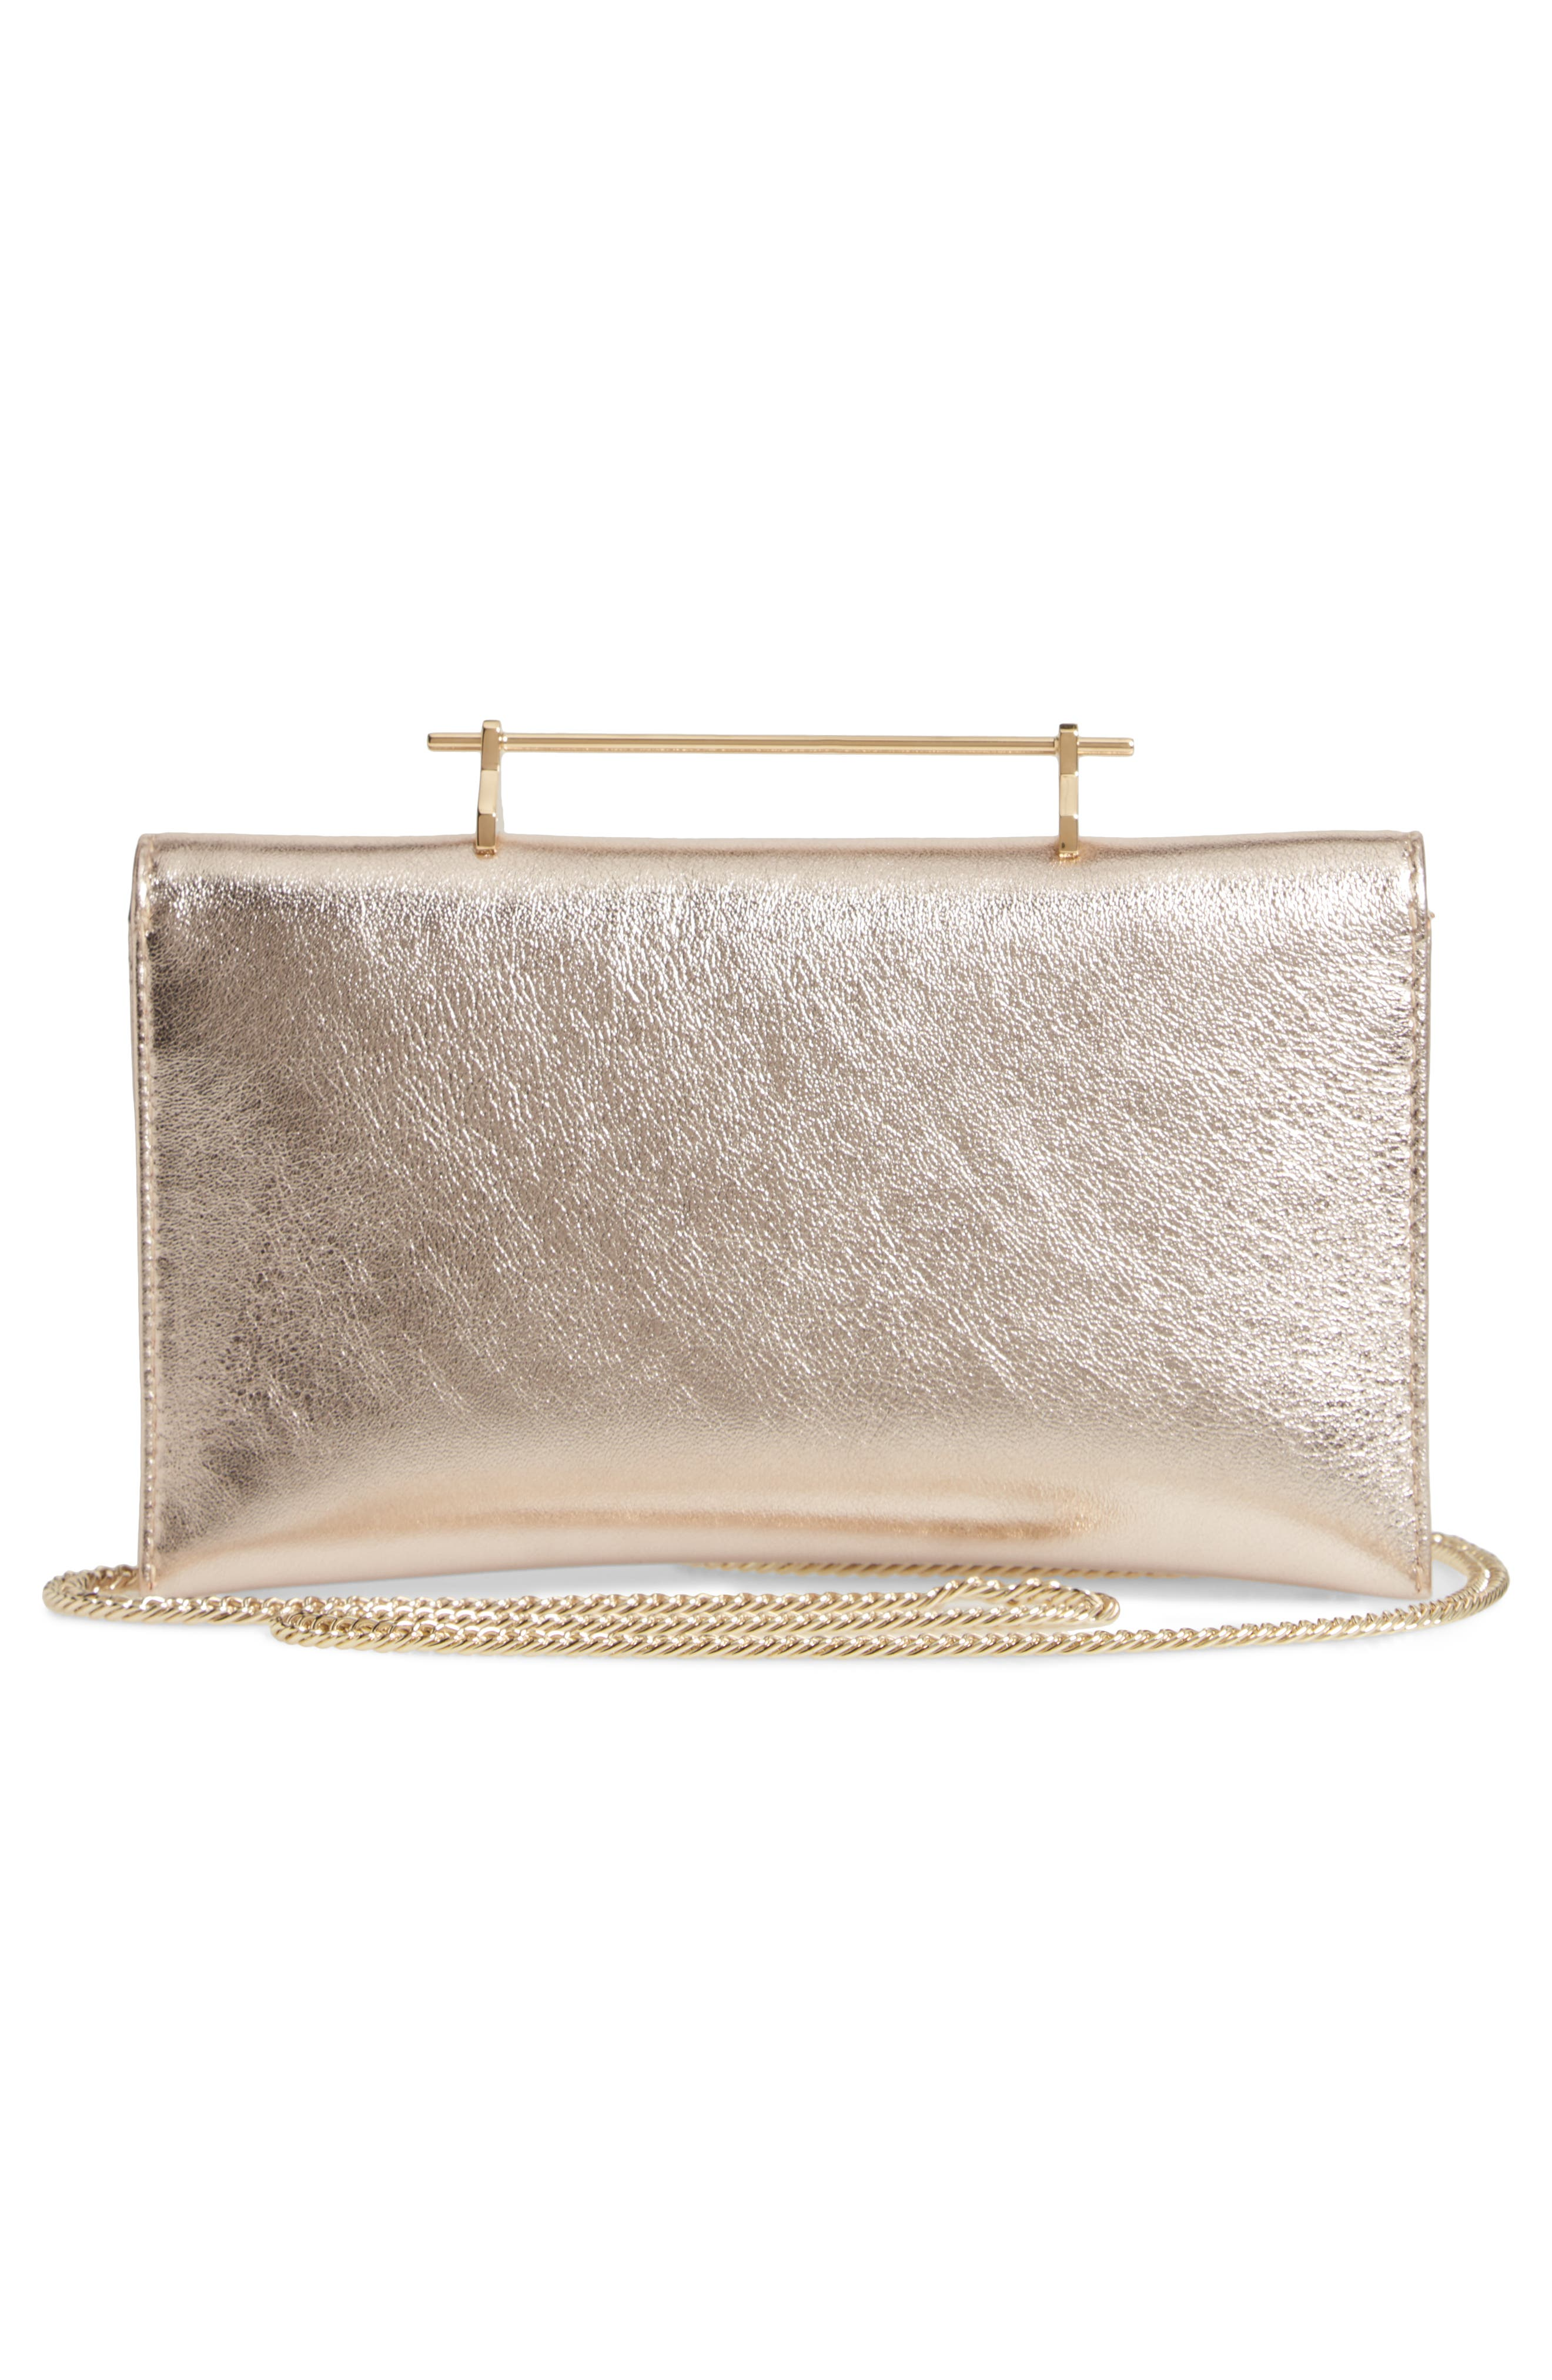 Annabelle Metallic Calfskin Leather Clutch,                             Alternate thumbnail 3, color,                             METALLIC GOLD/ GOLD